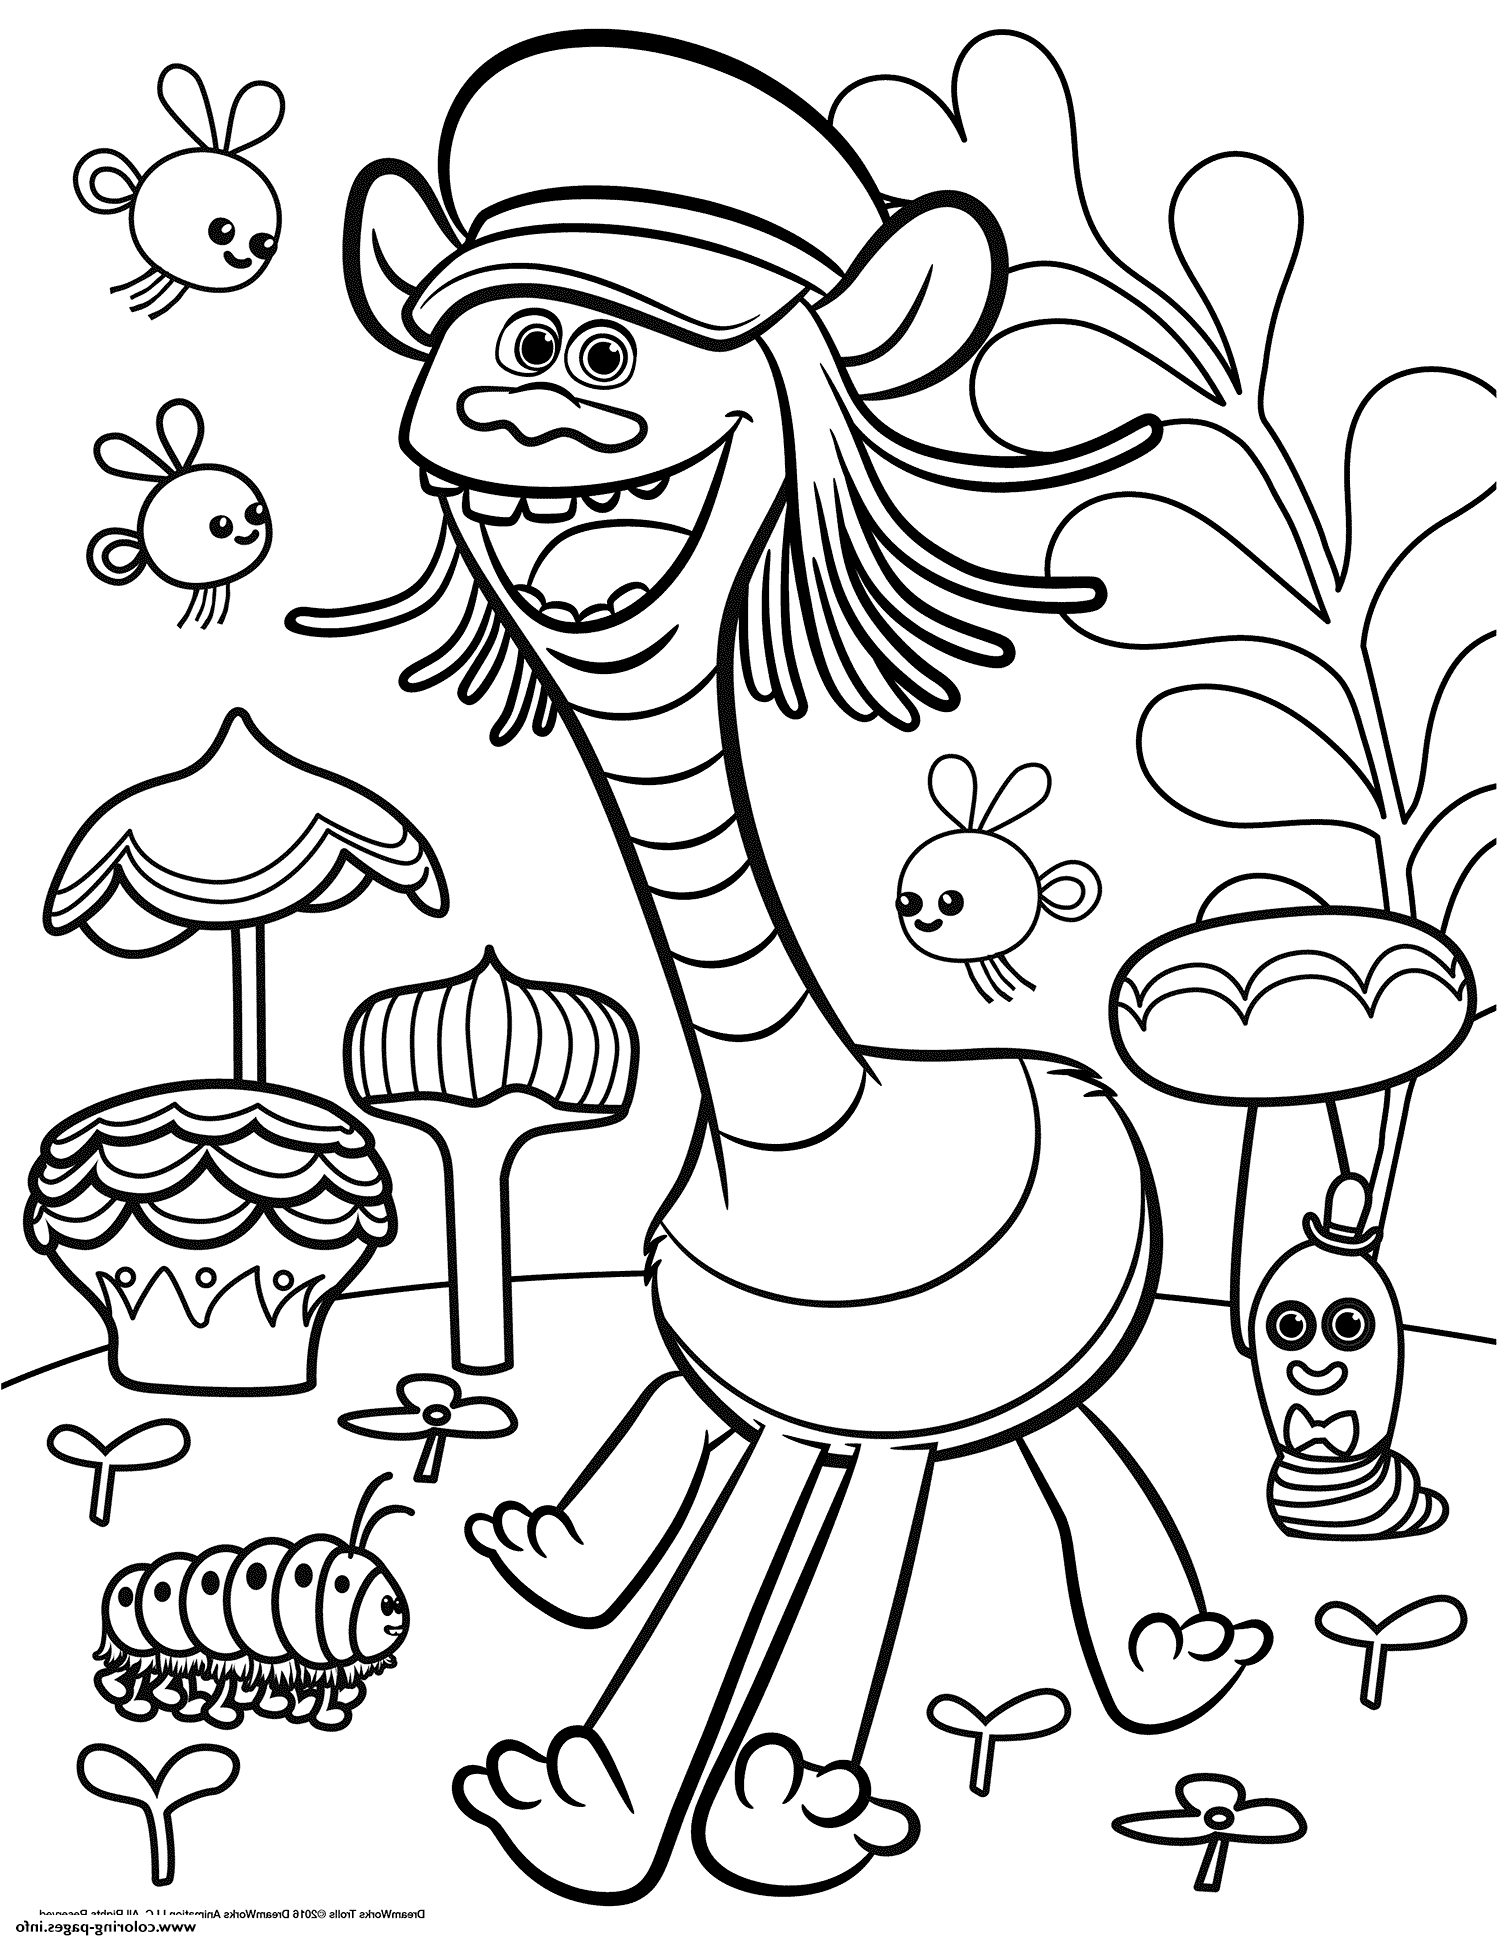 Free Printable Troll Coloring Pages - Trolls Coloring Pages that are Printable